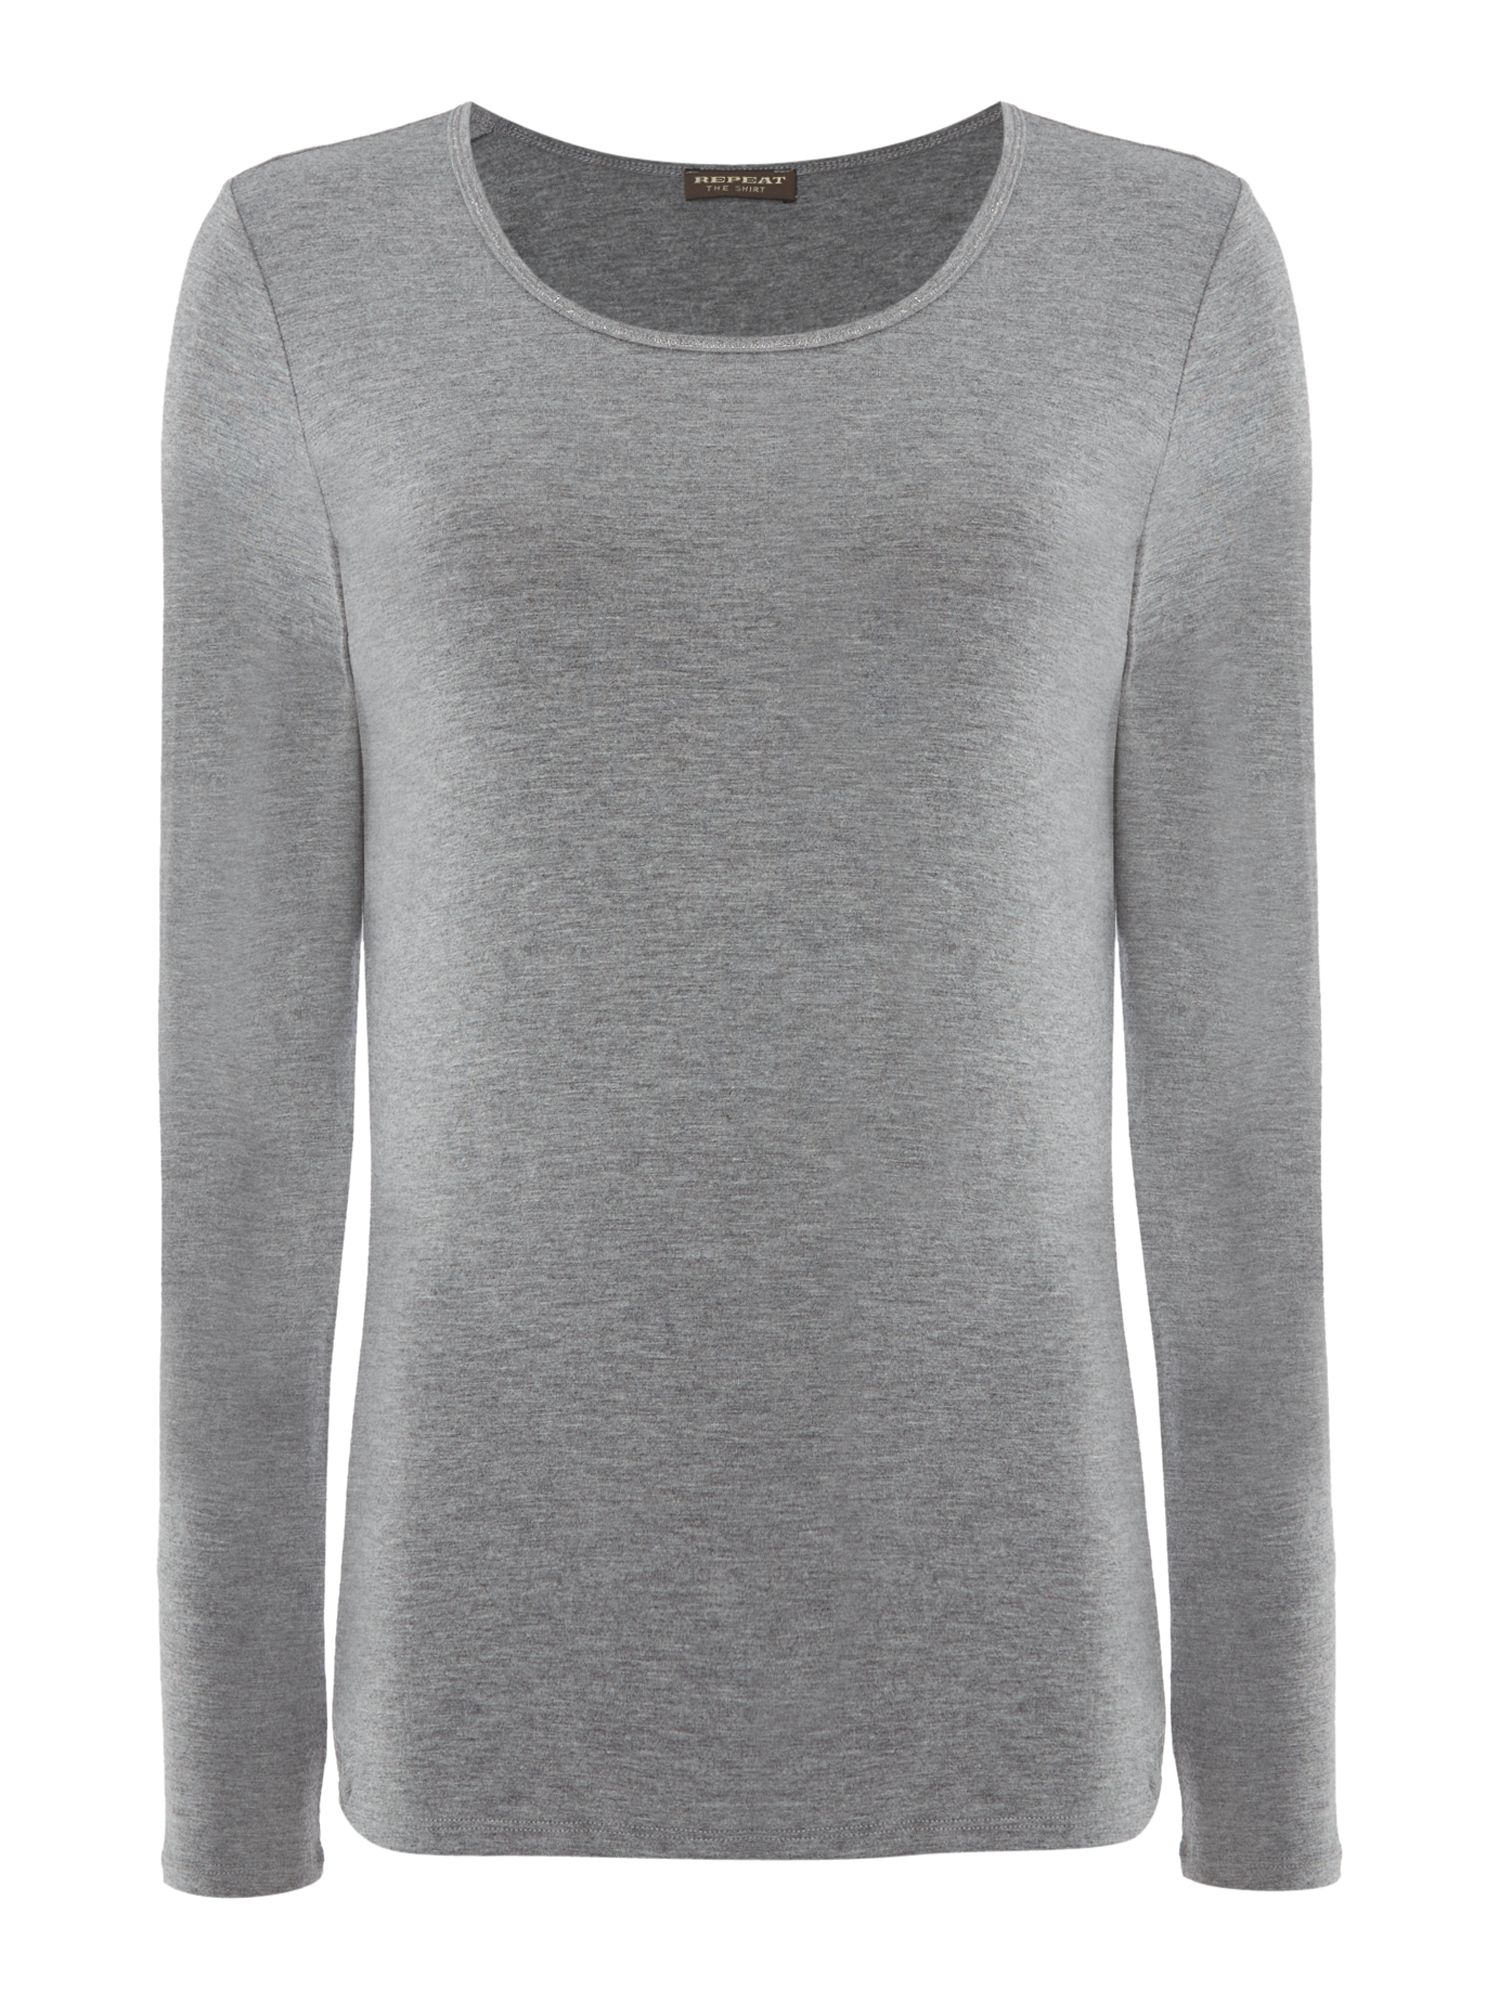 Repeat Cashmere Repeat Cashmere Round neck long sleeve top, Mid Grey